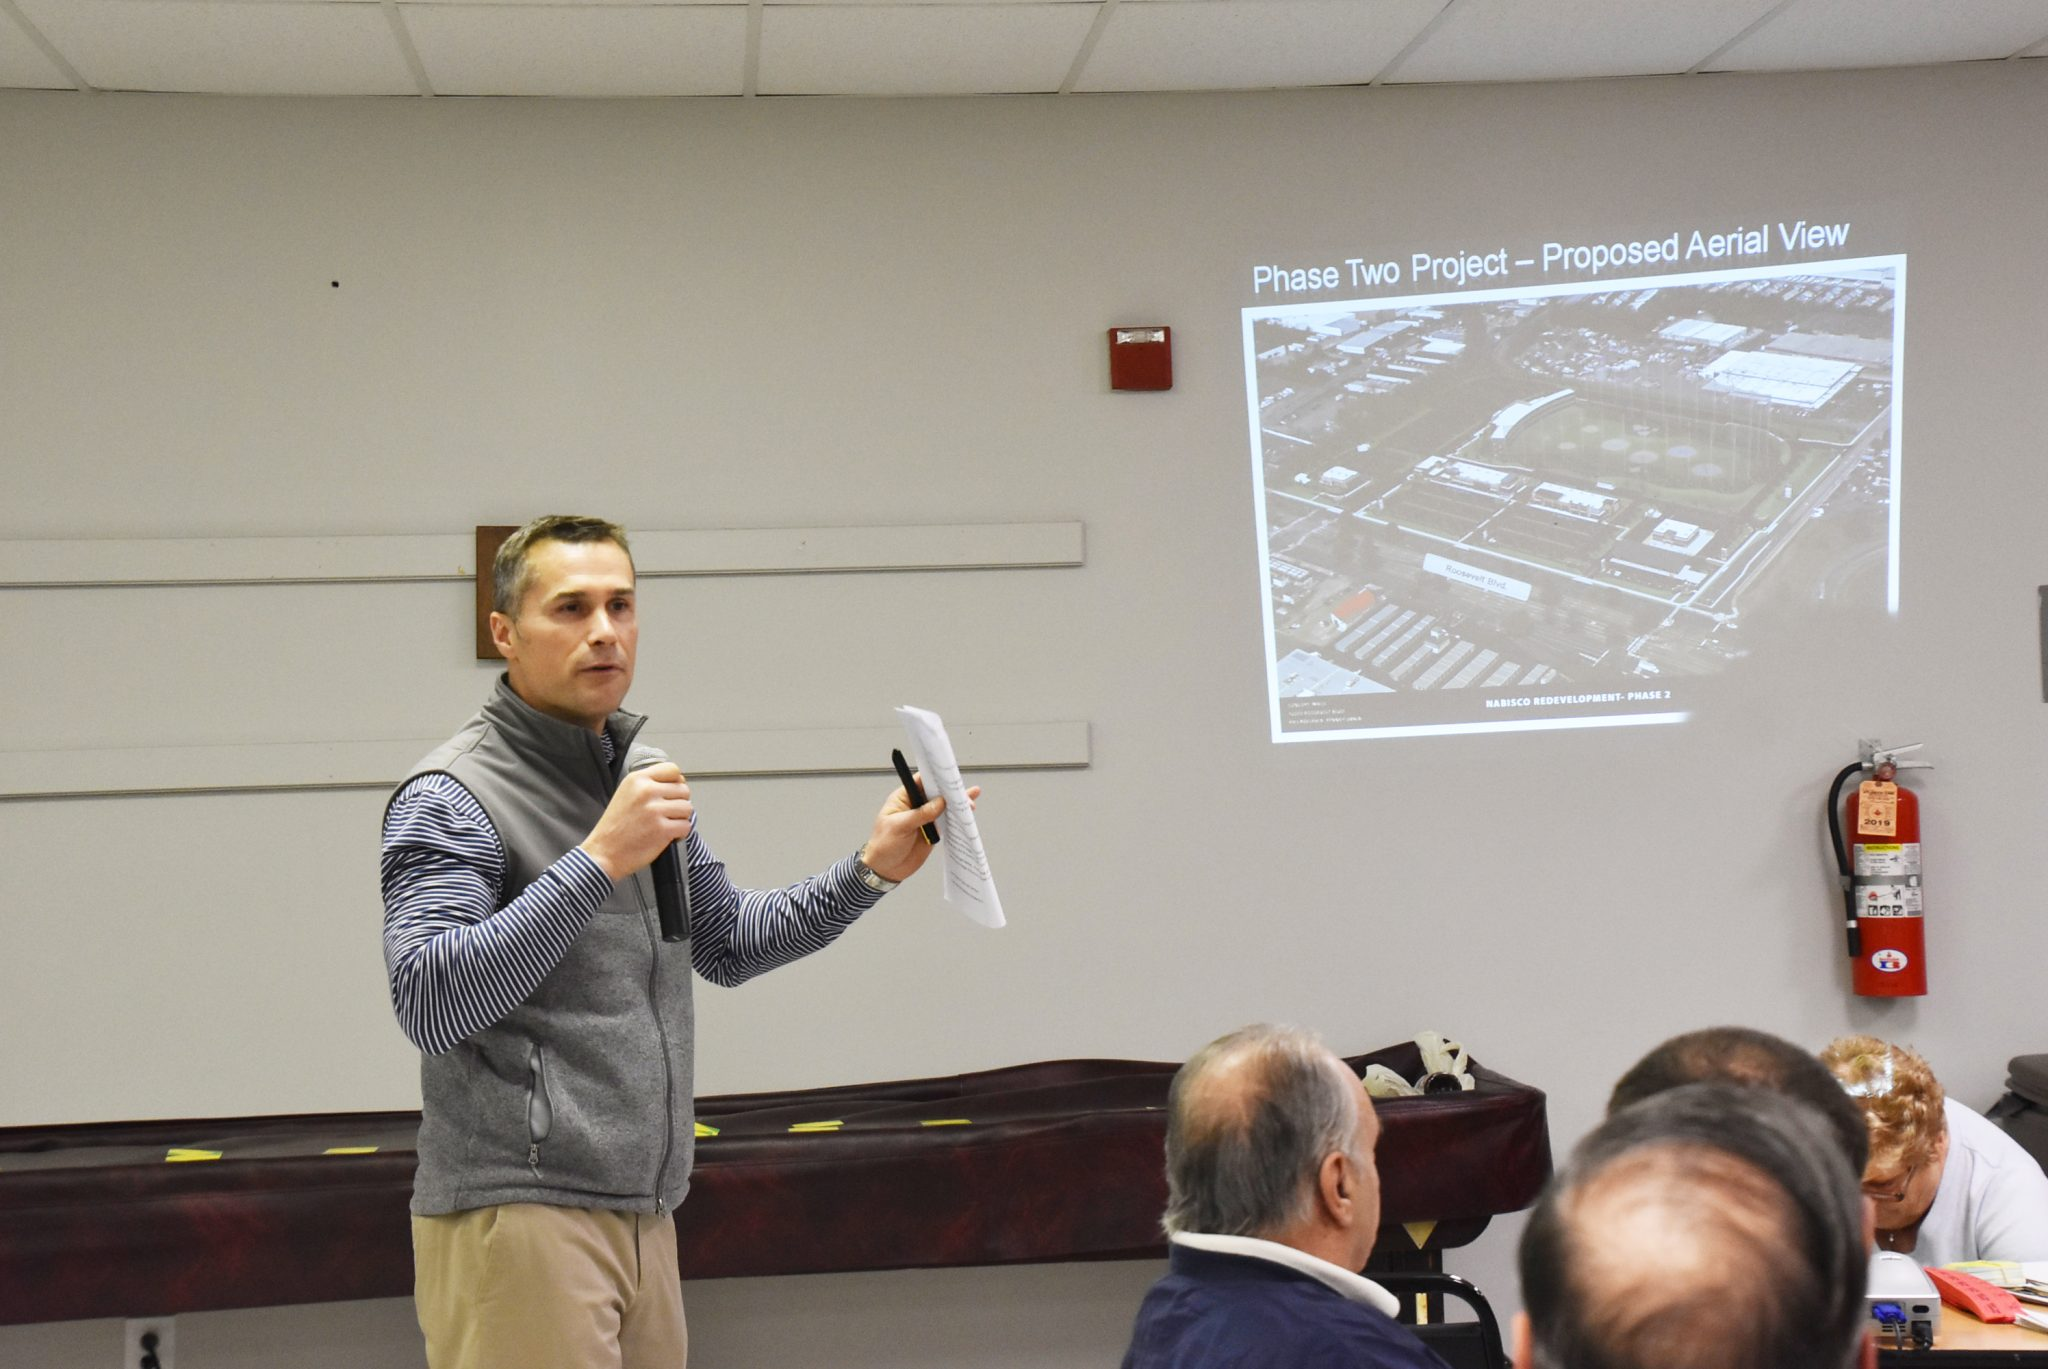 Huge golf entertainment facility planned for former Nabisco